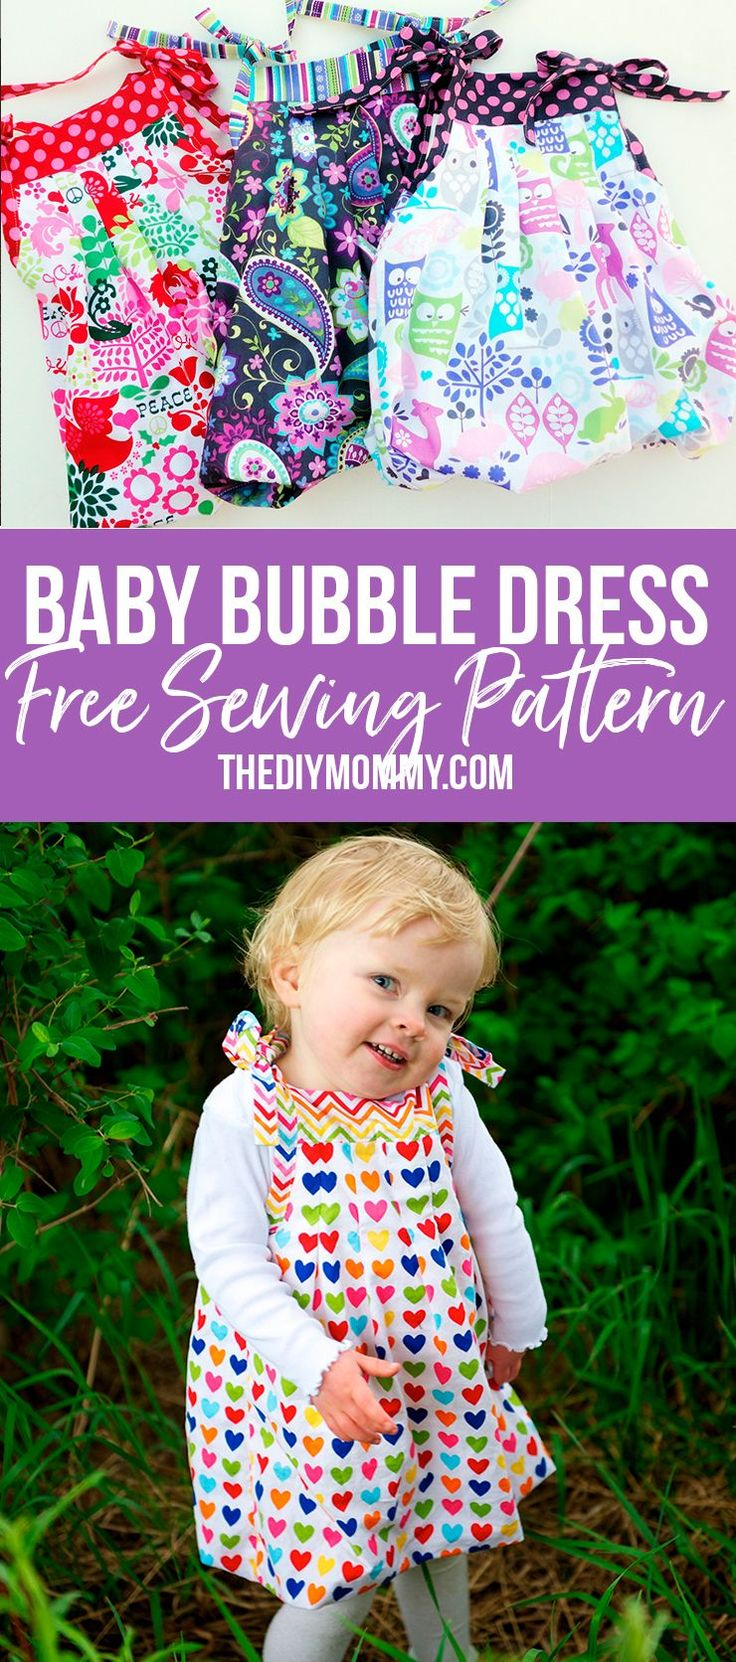 Learn how to sew this adorable bubble baby dress that grows with your child! FREE pattern!